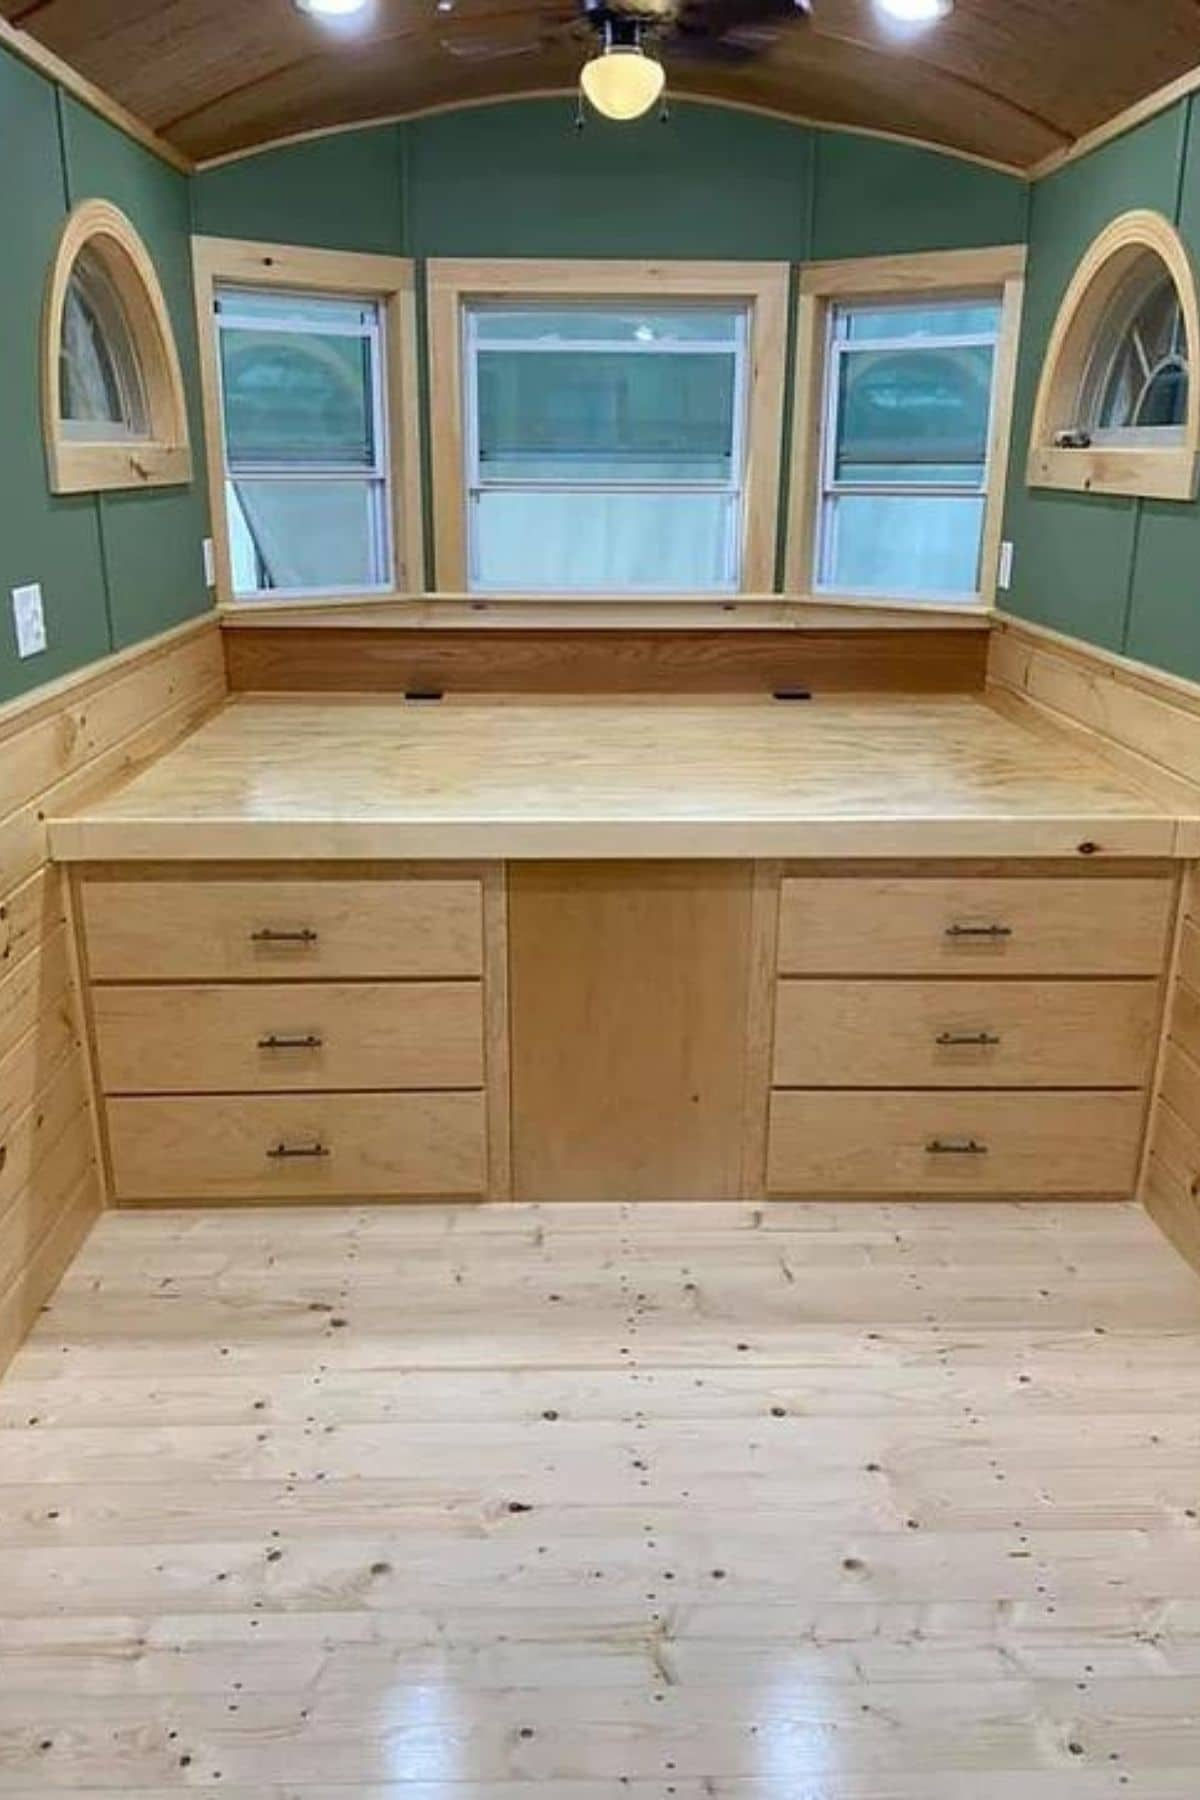 Captains bed with top down showing space against wall with drawers on both sides